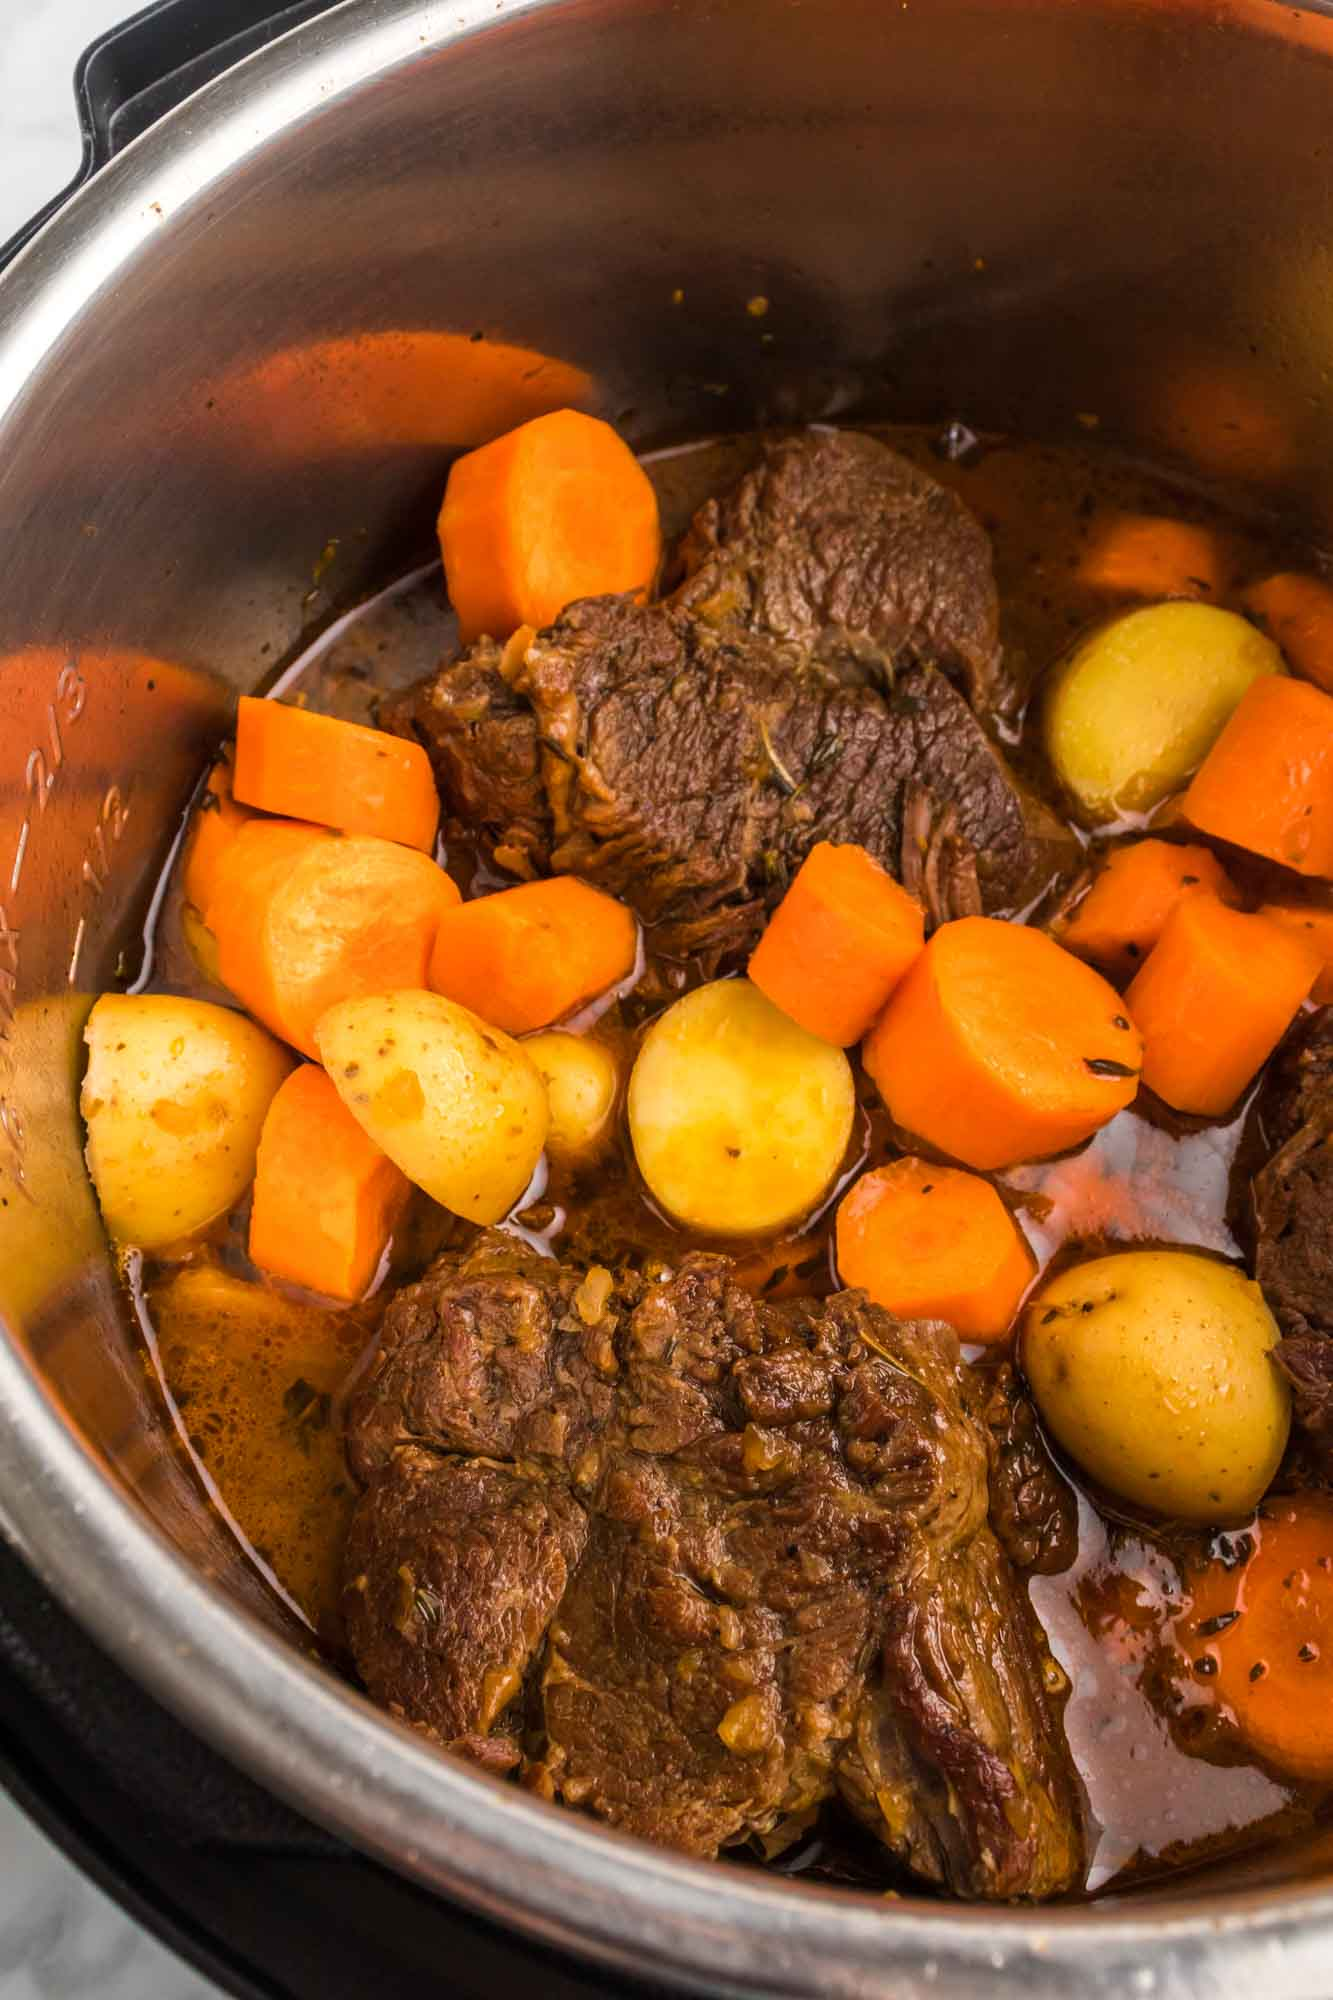 Cooked chuck roast in the instant pot with potatoes and carrots